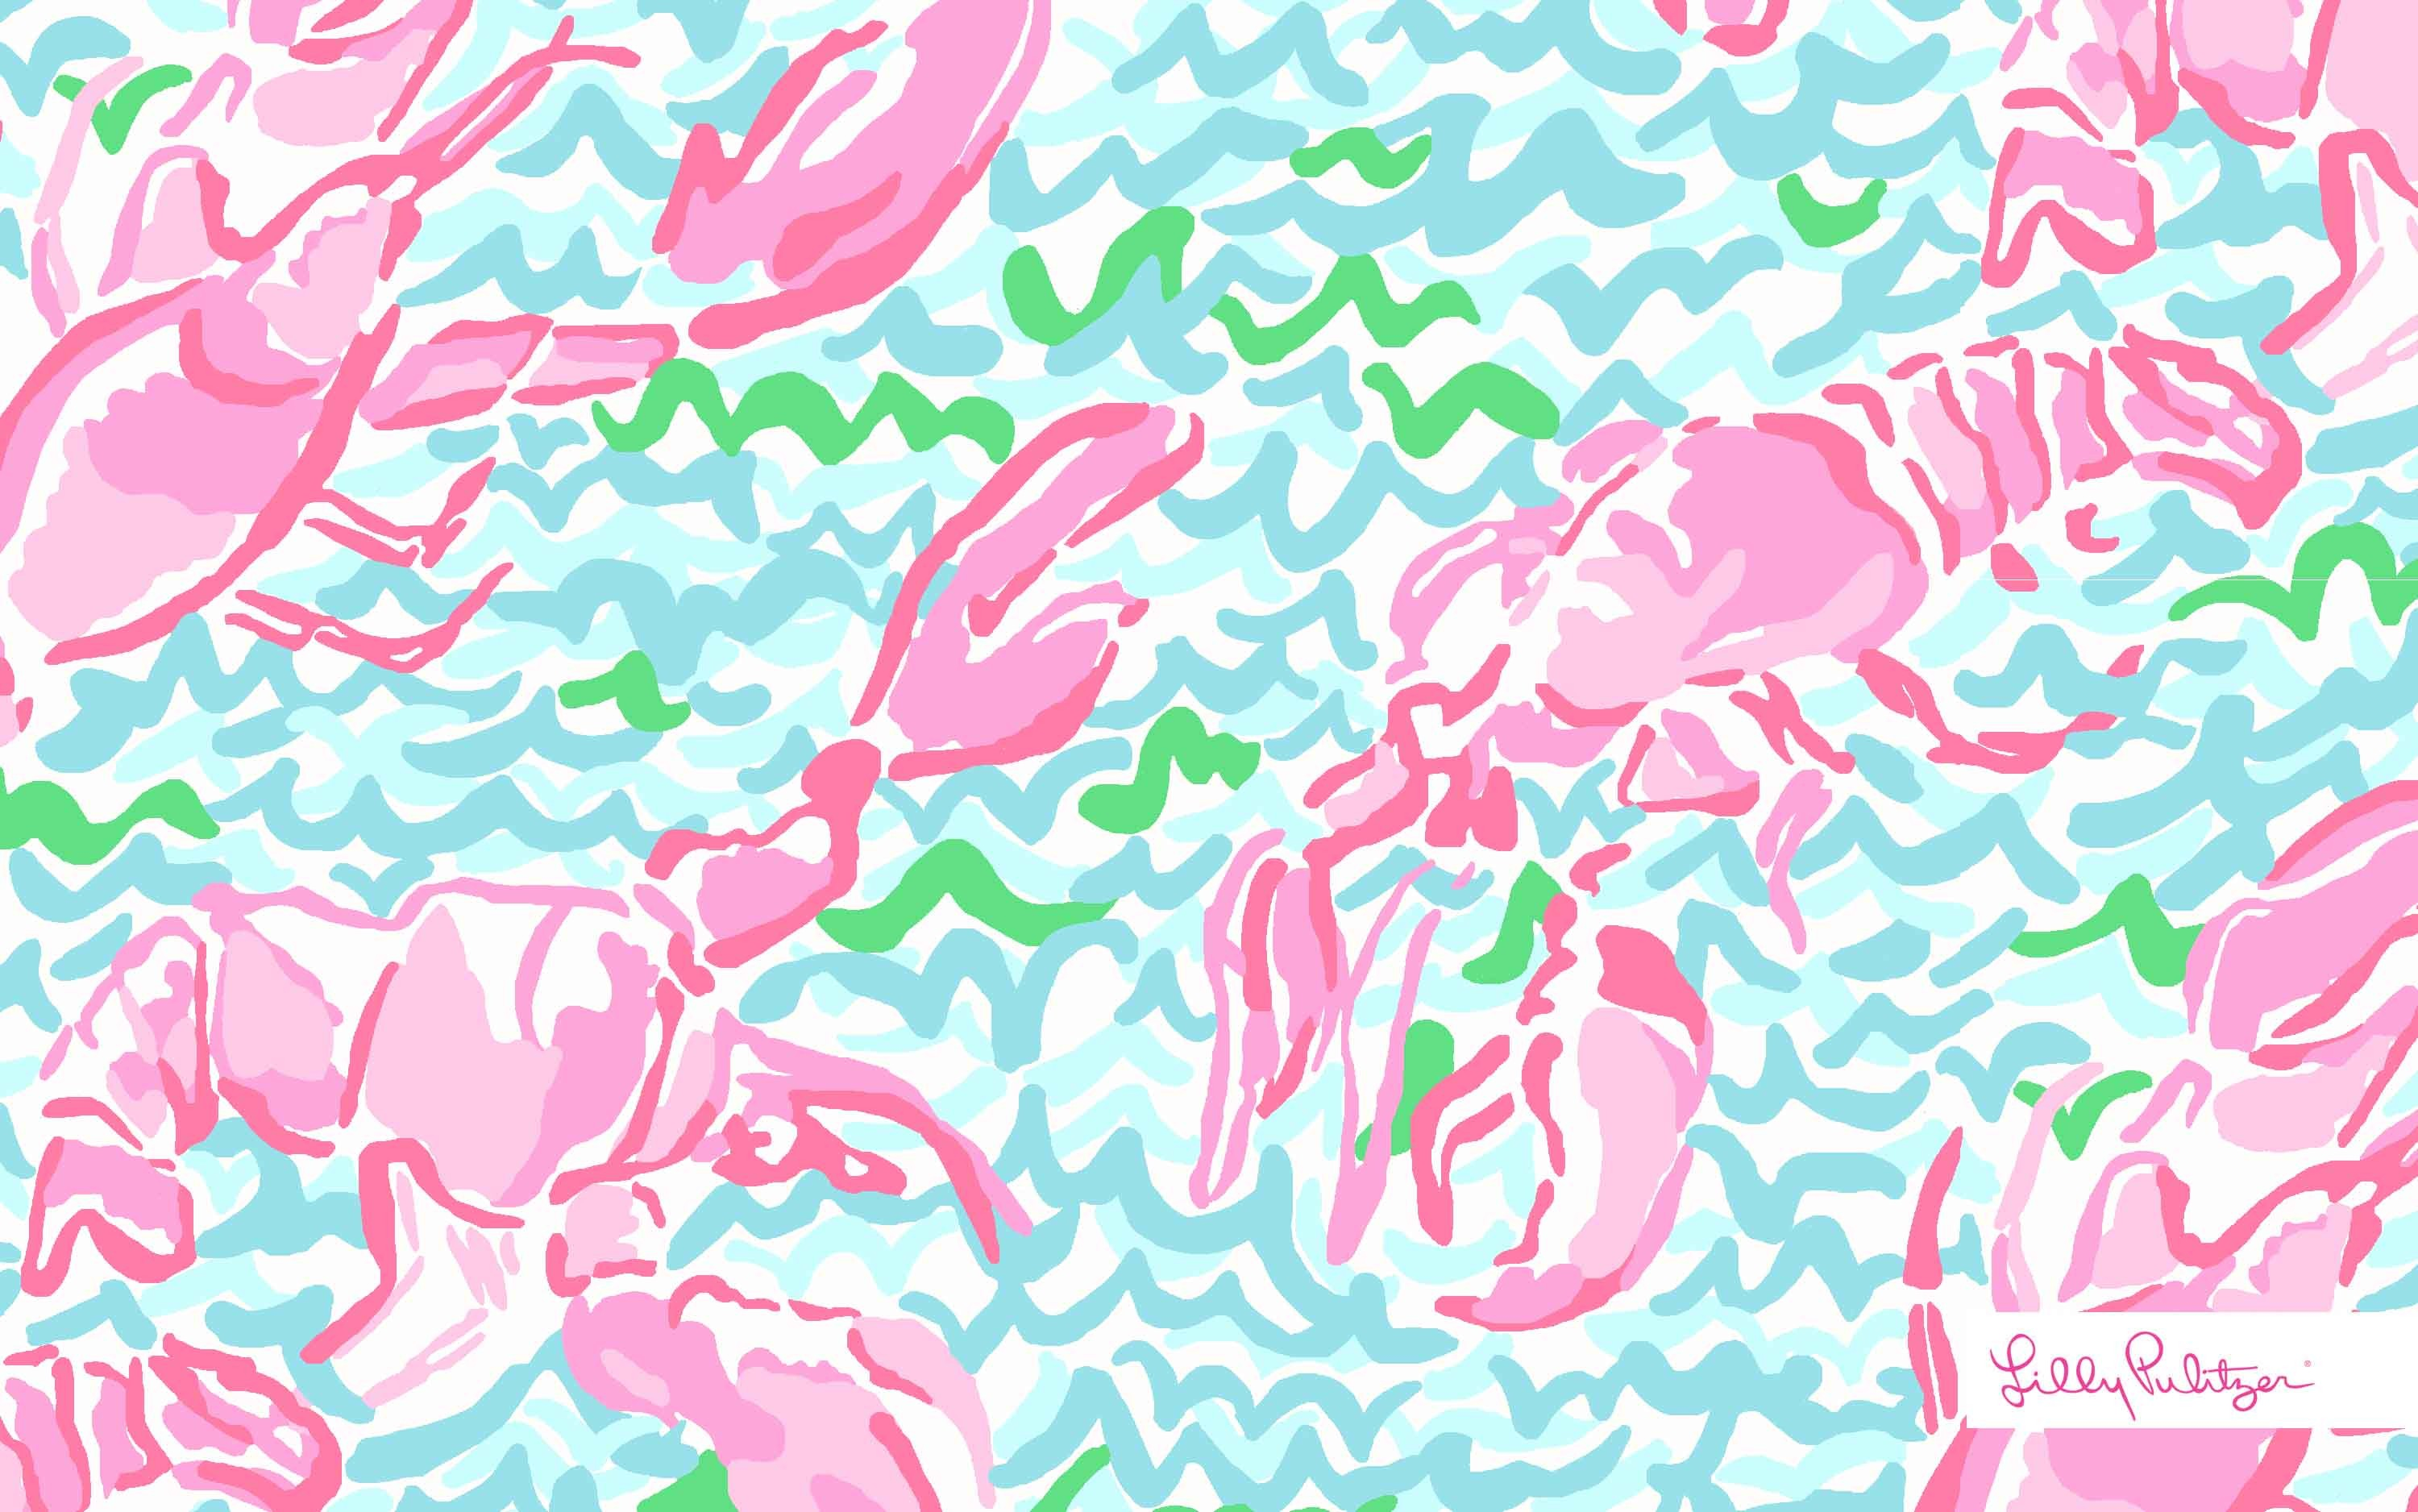 75 Lilly Pulitzer Backgrounds 1 Download Free Amazing HD